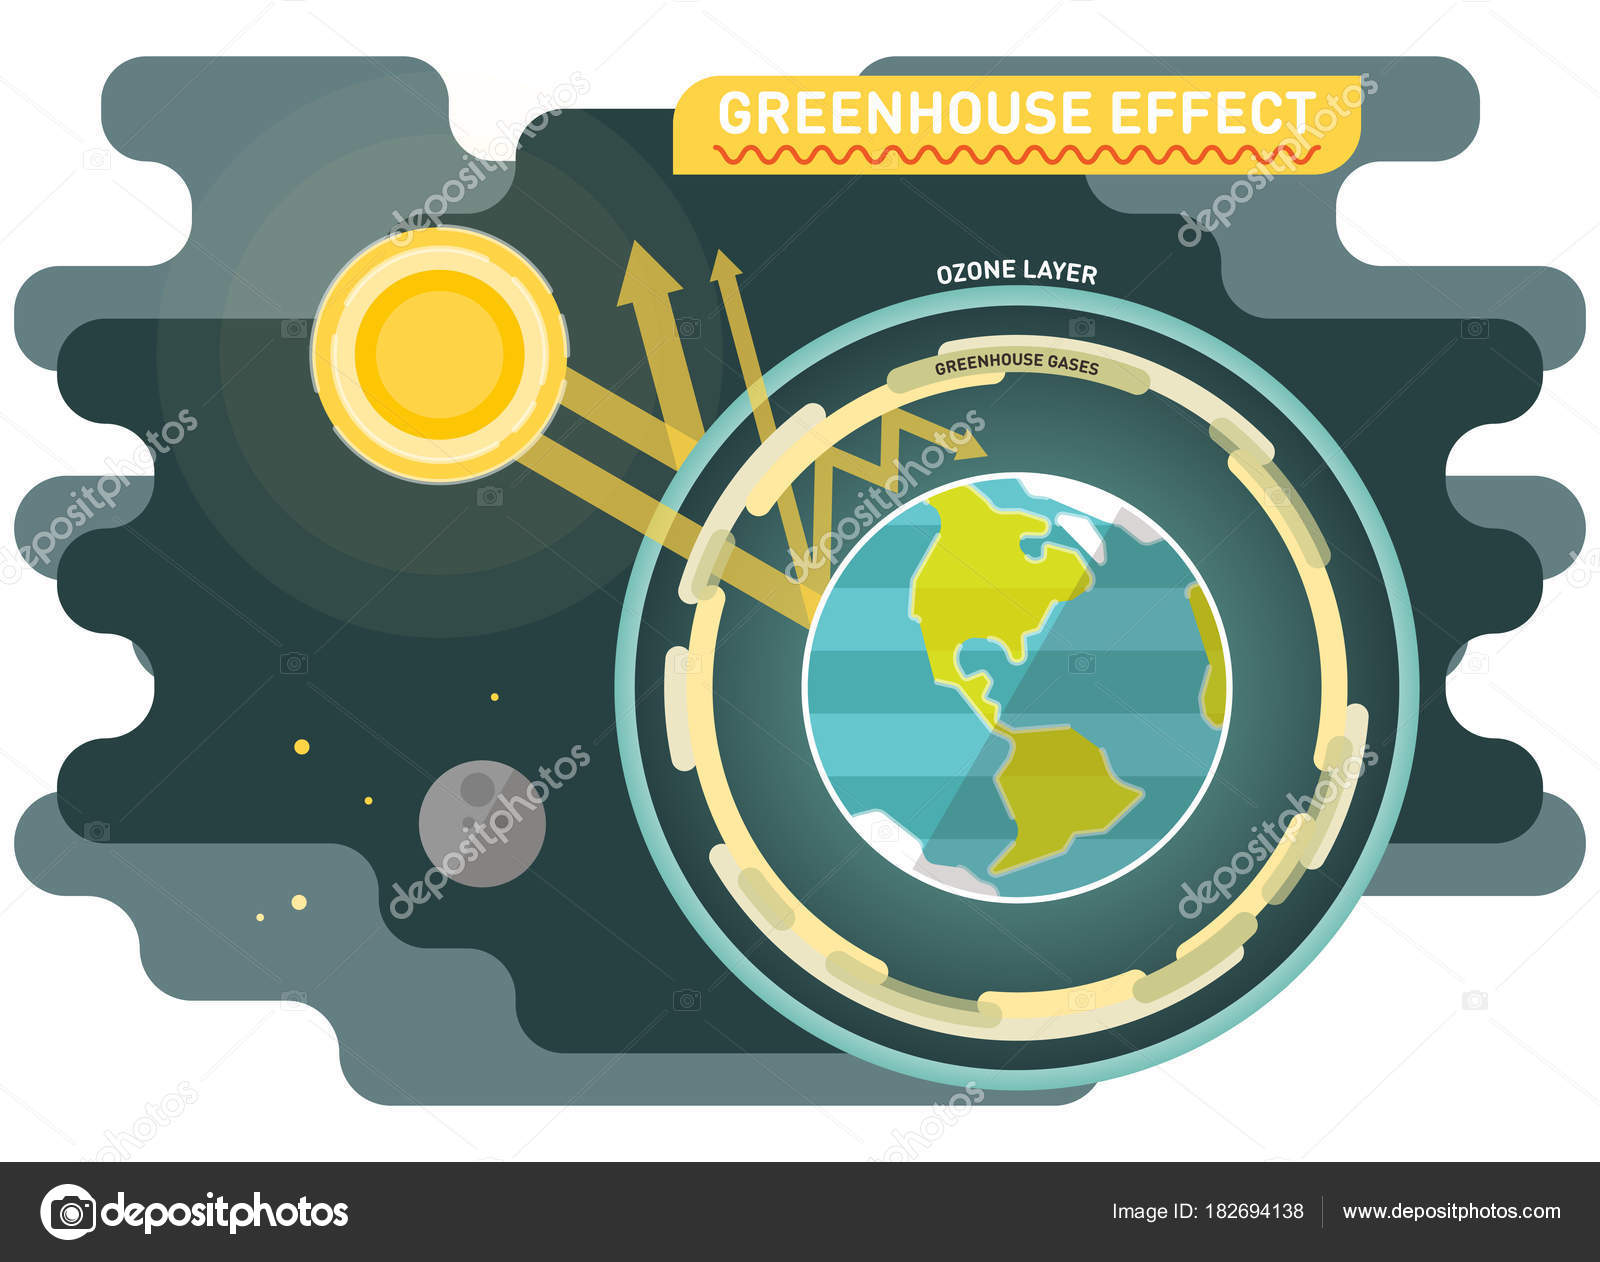 Greenhouse effect diagram graphic vector illustration with sun greenhouse effect diagram graphic vector illustration with sun and planet earth stock vector pooptronica Choice Image